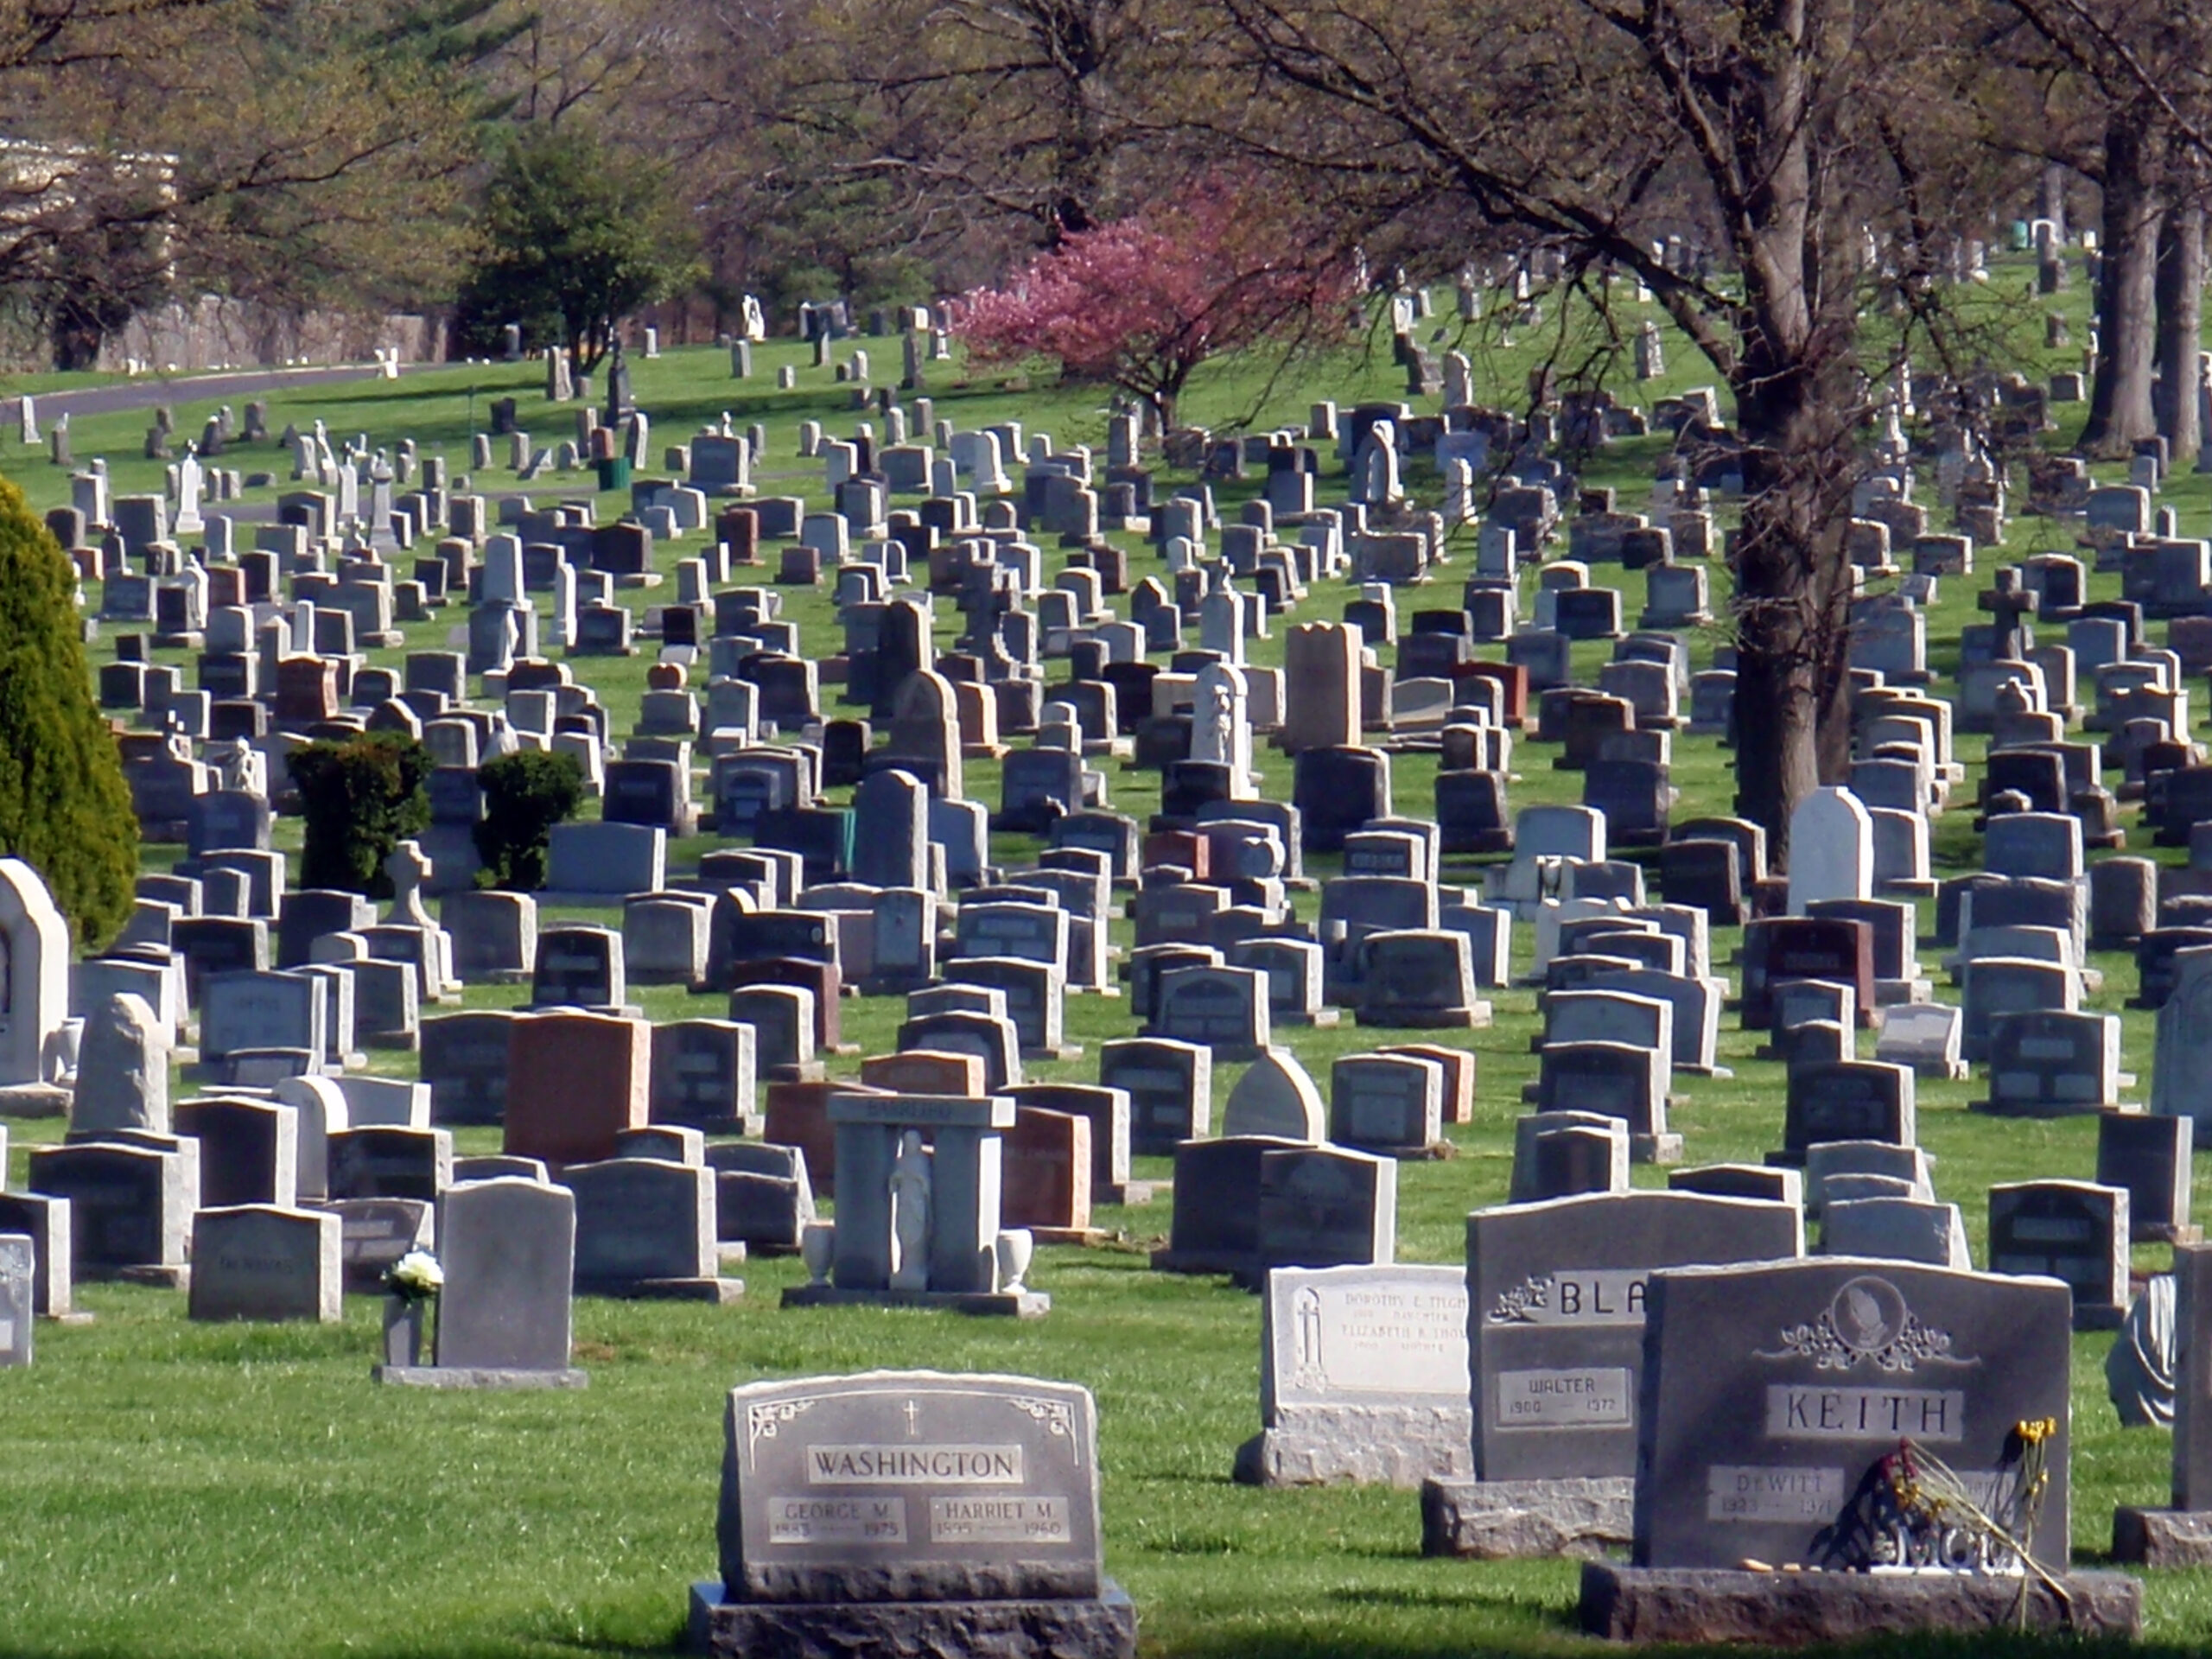 A large, modern cemetery with many headstones.